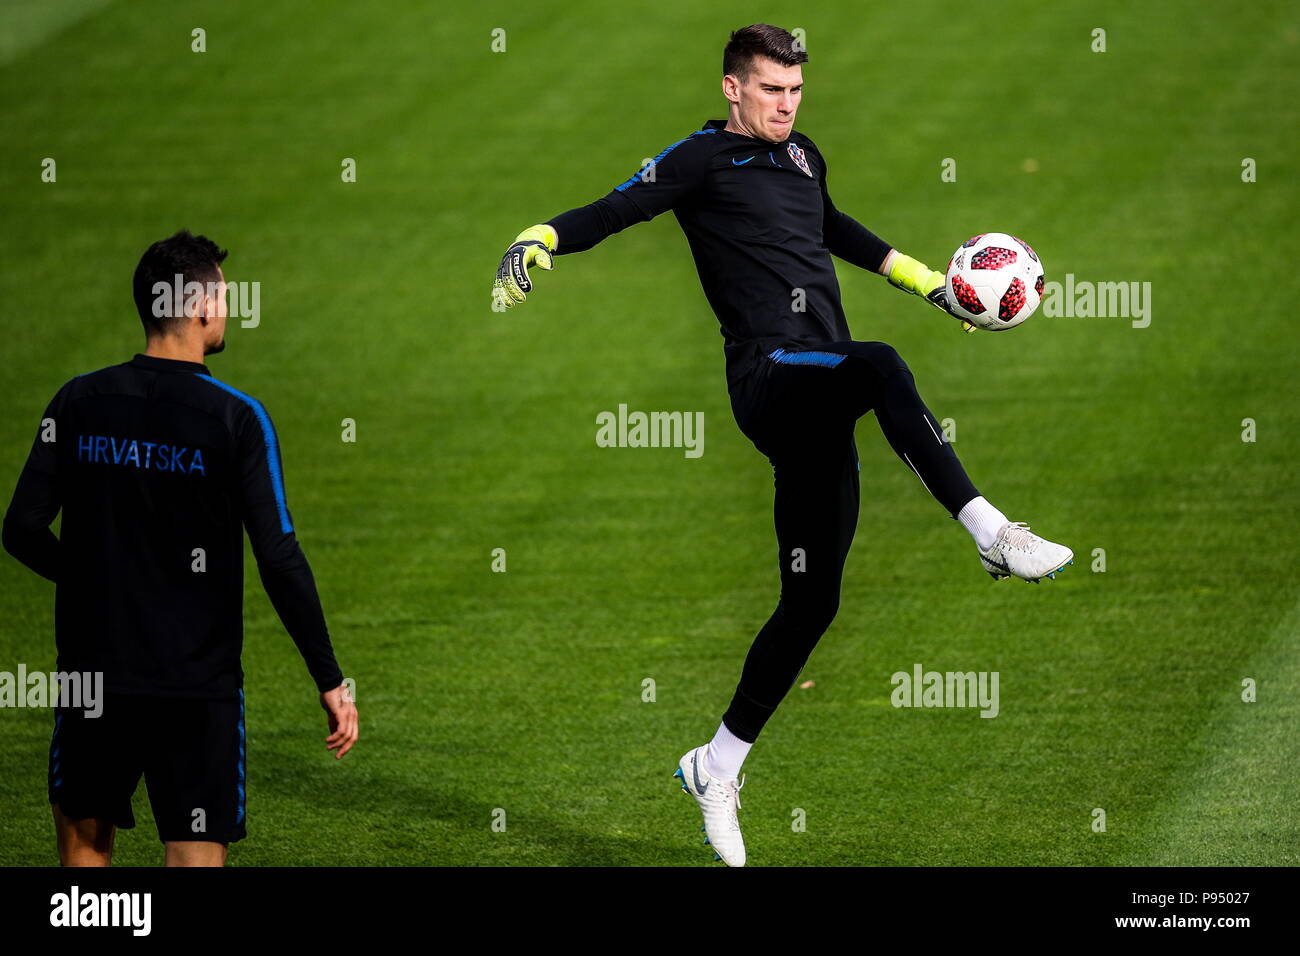 af0c6b52218fe3 Goalkeeper Dominik Livakovic (R) of the Croatian men s national football  team during a training session at Moscow s Luzhniki Stadium ahead of the  upcoming ...